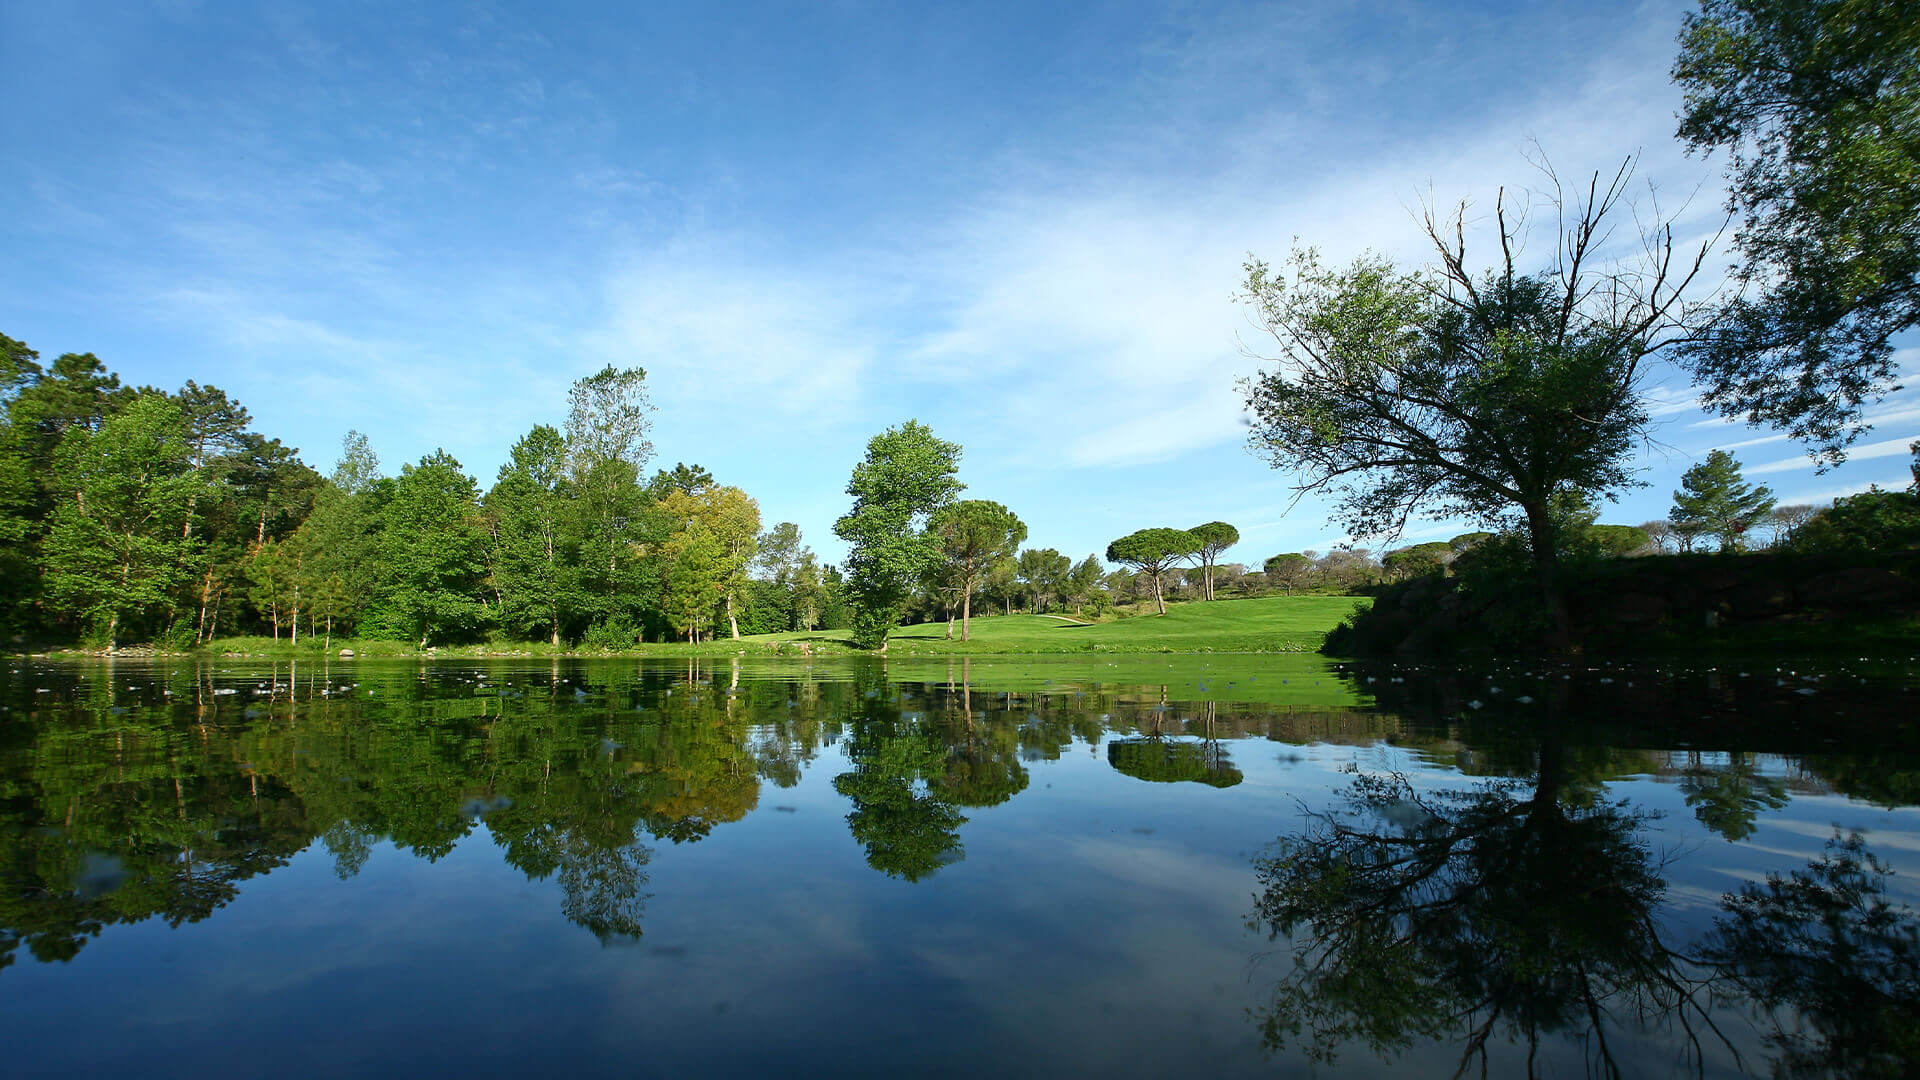 Provence golf and Spa lake and forest